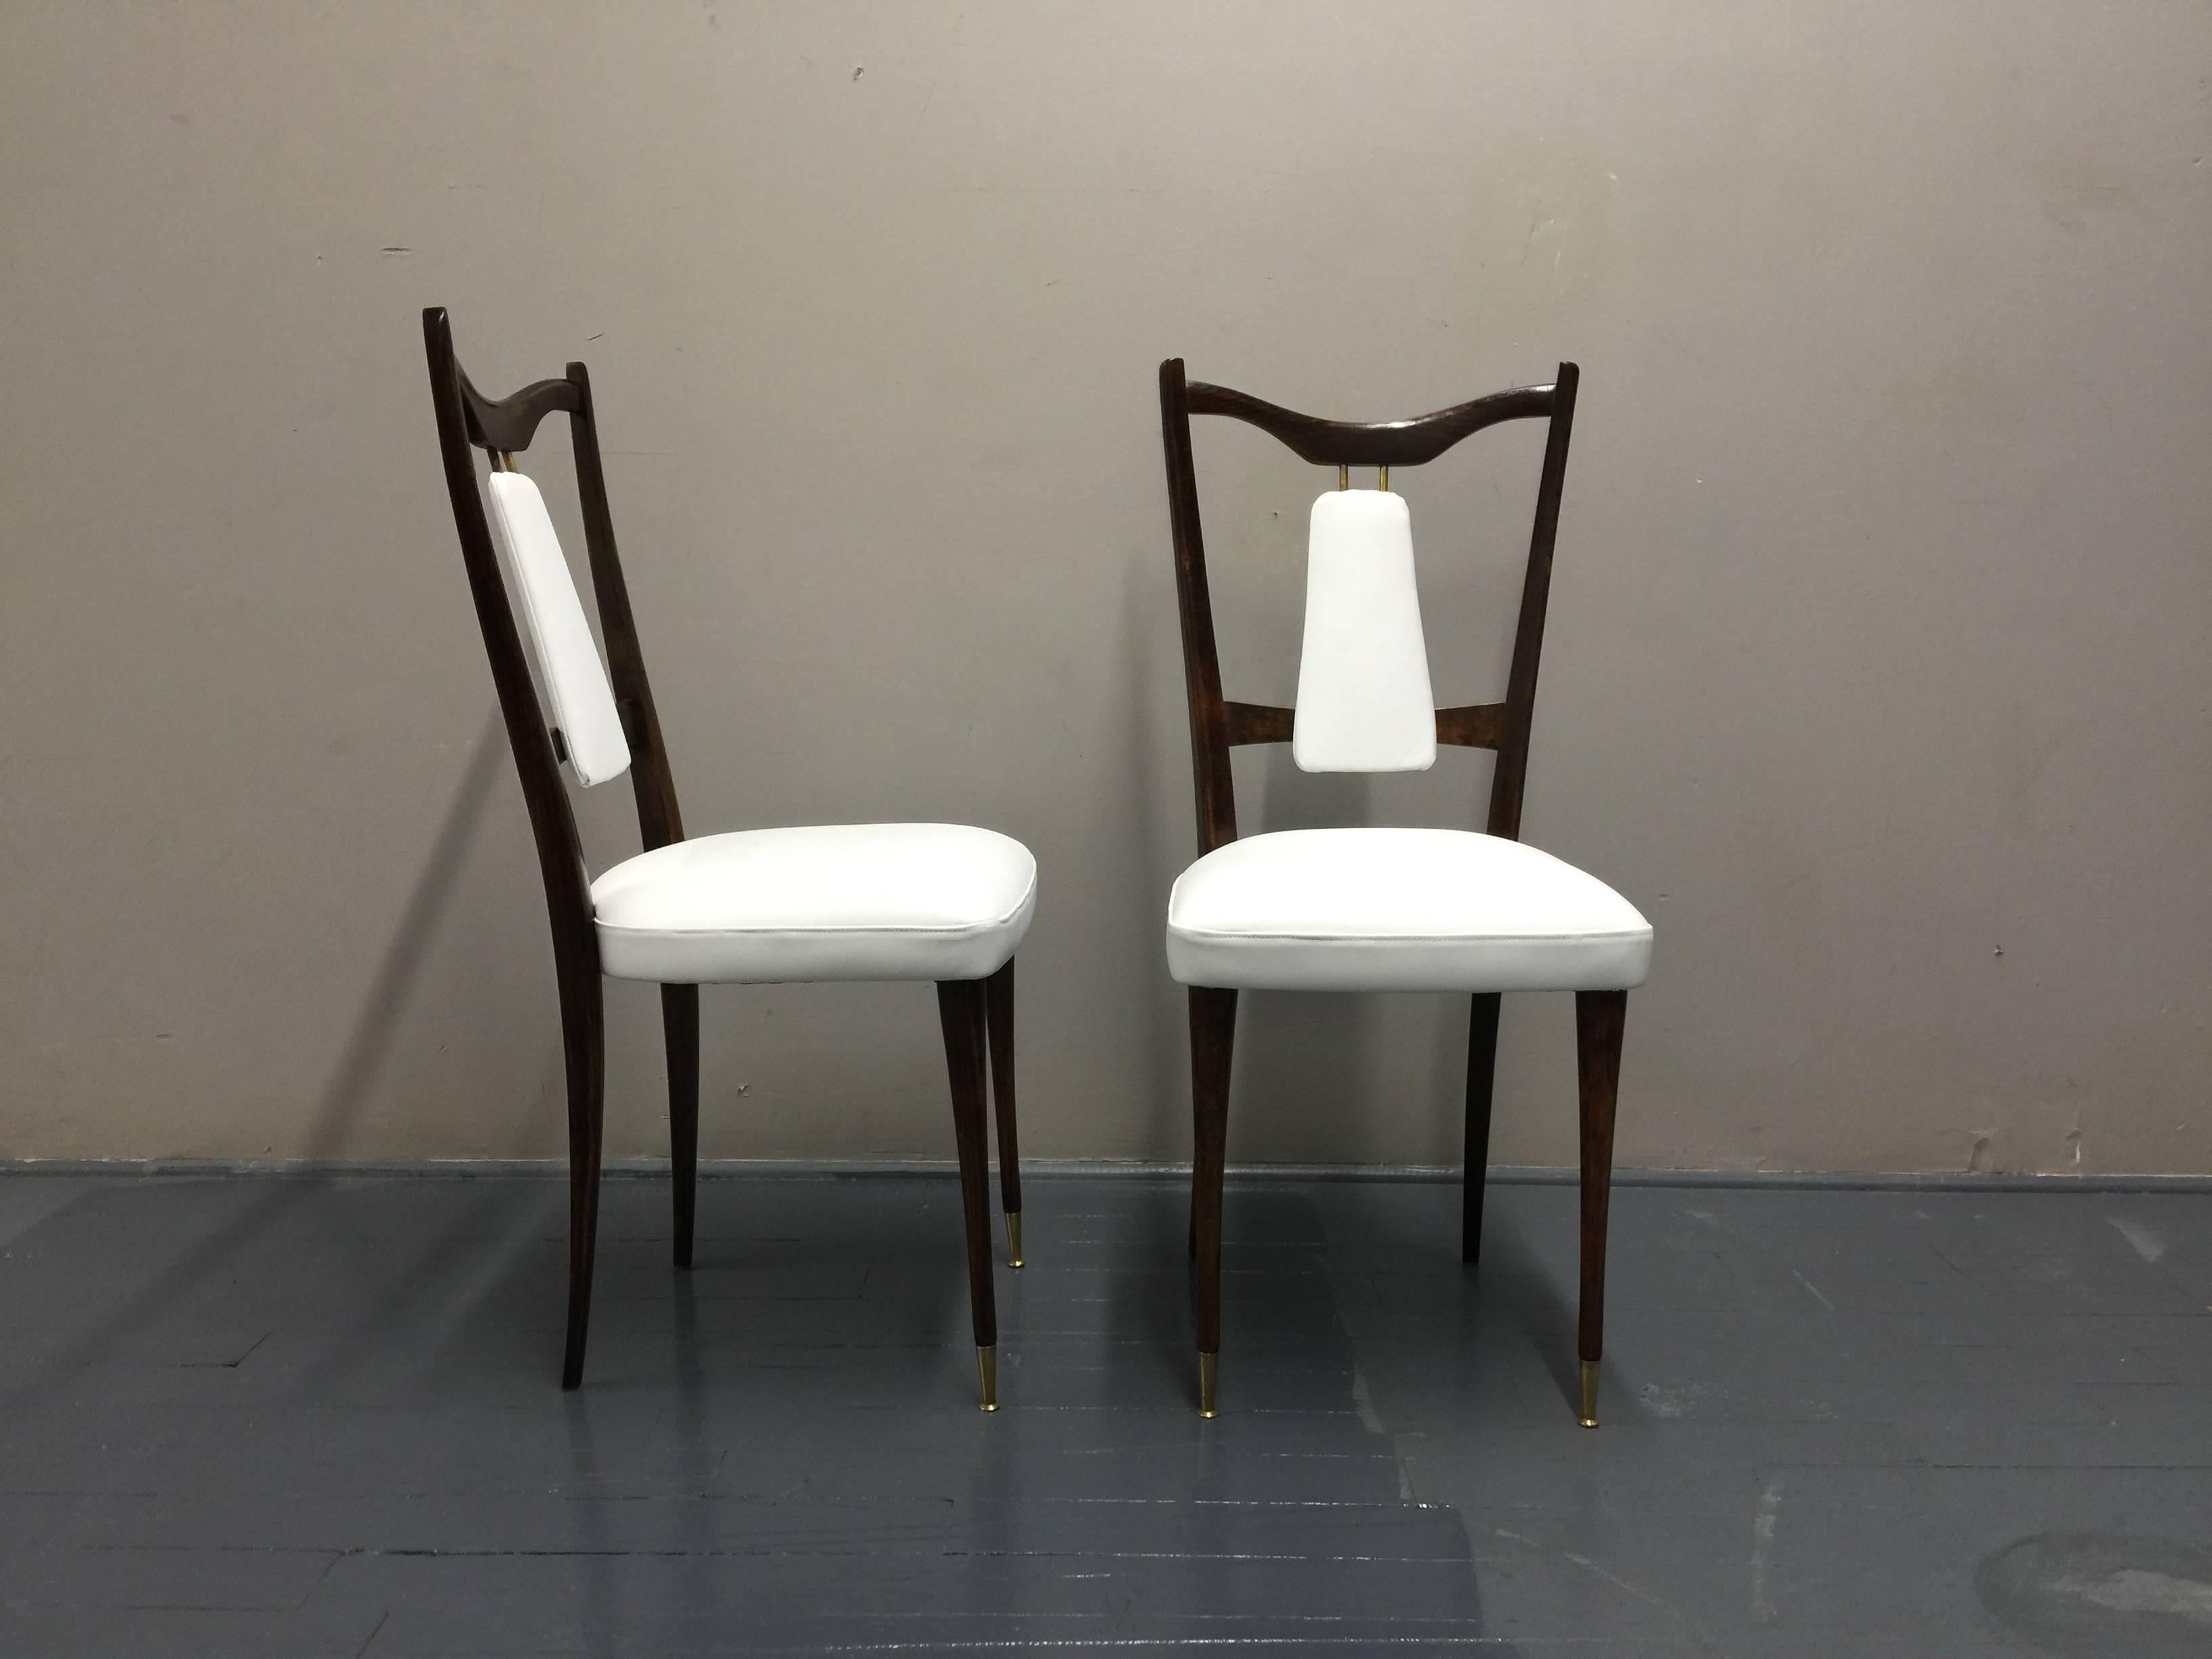 Six Italian White Leather Dining Room Chairs Mid Century Period 1960s Restored For Sale at 1stdibs